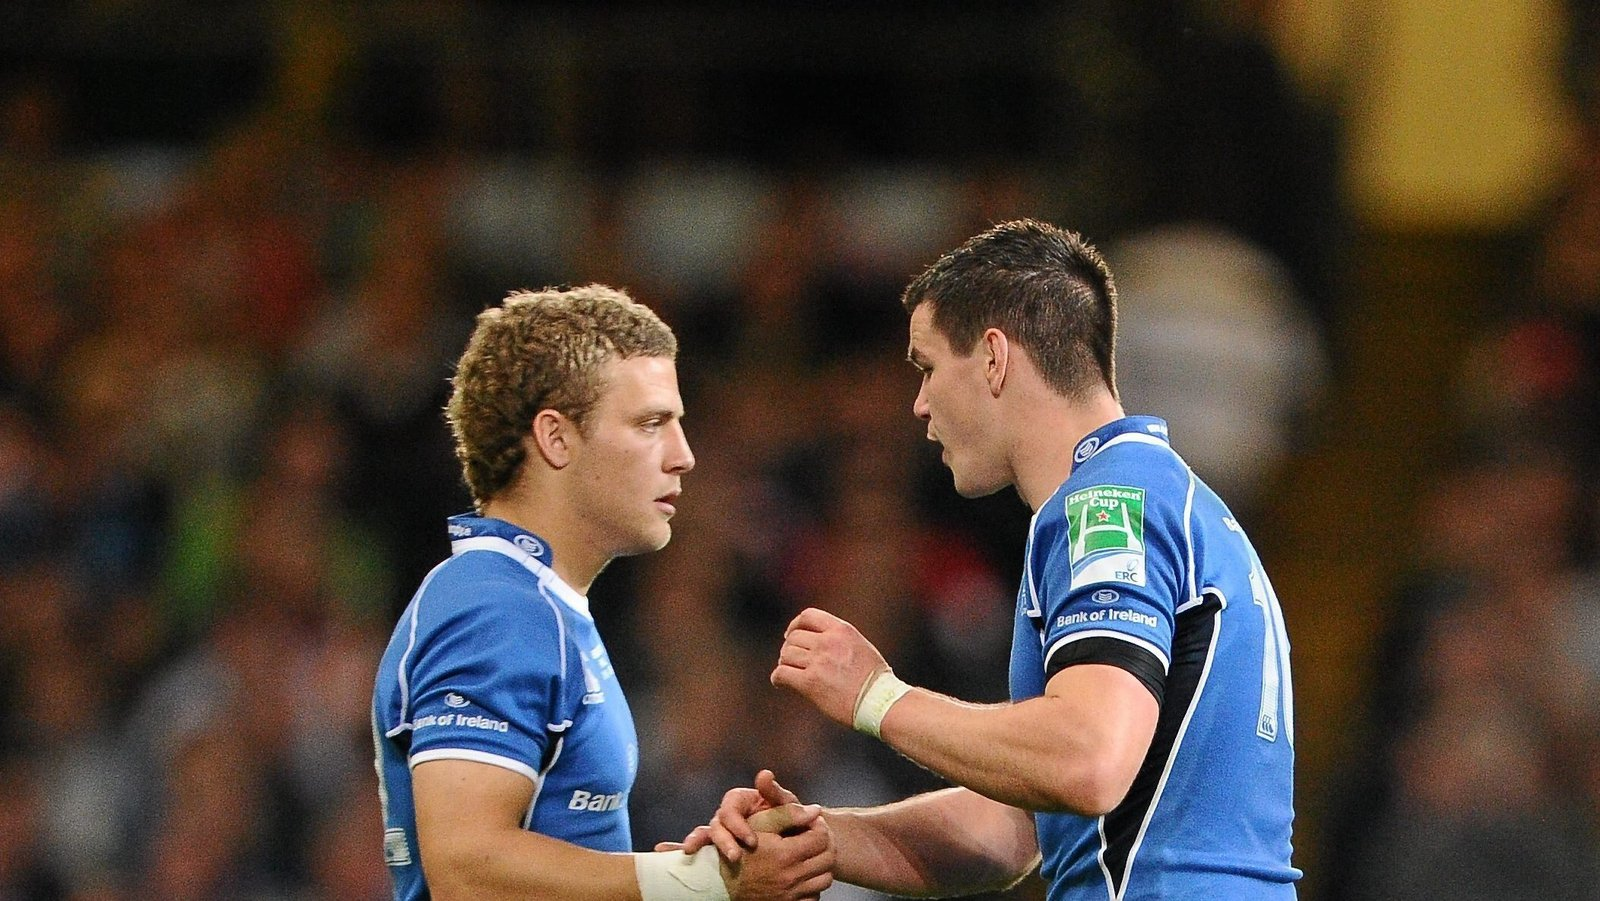 Image - Madigan and Sexton in 2011